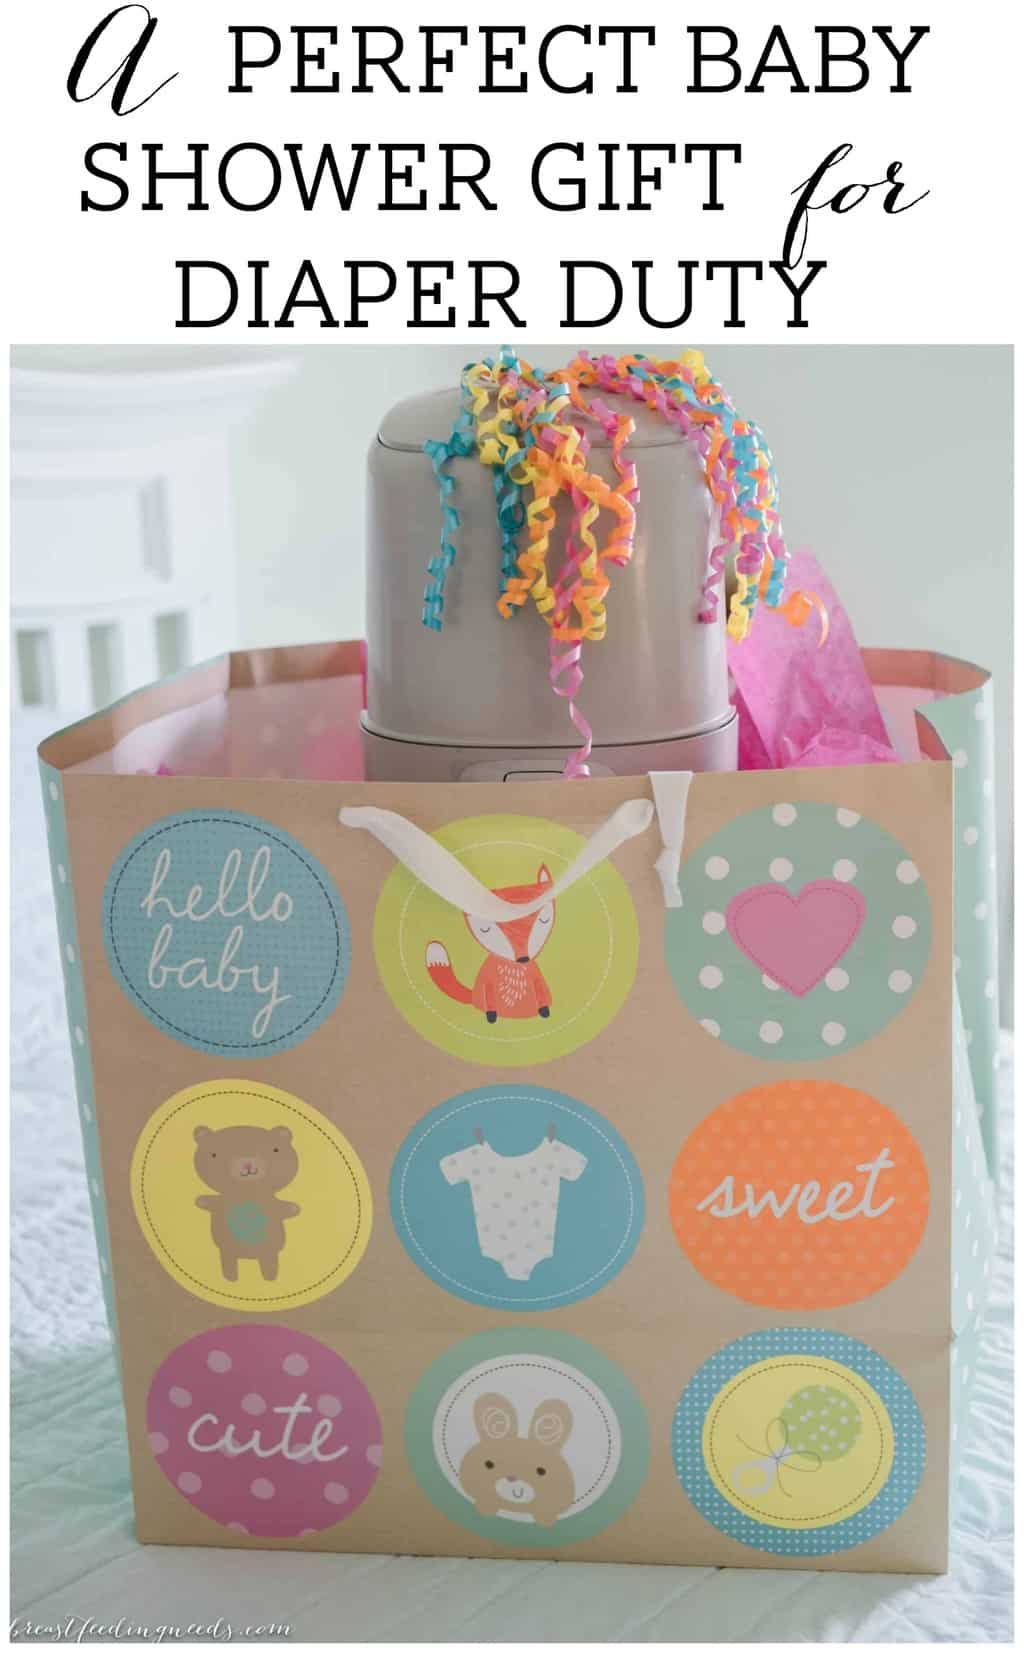 How To Choose The Perfect Baby Shower Gift: 1. What is the theme of the baby shower? Buying your gift to match the theme of the baby shower is an excellent guide to narrow down your search for the perfect gift.